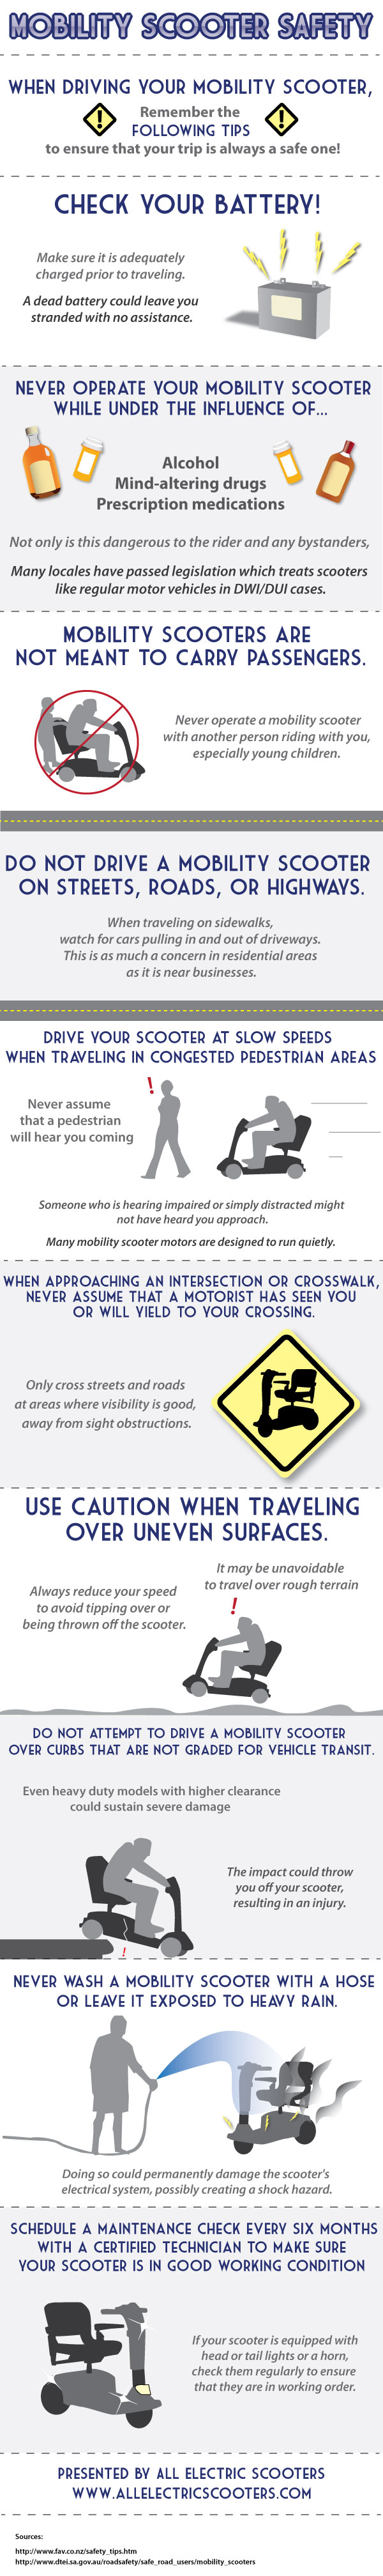 Mobility Scooter Safety Infographic